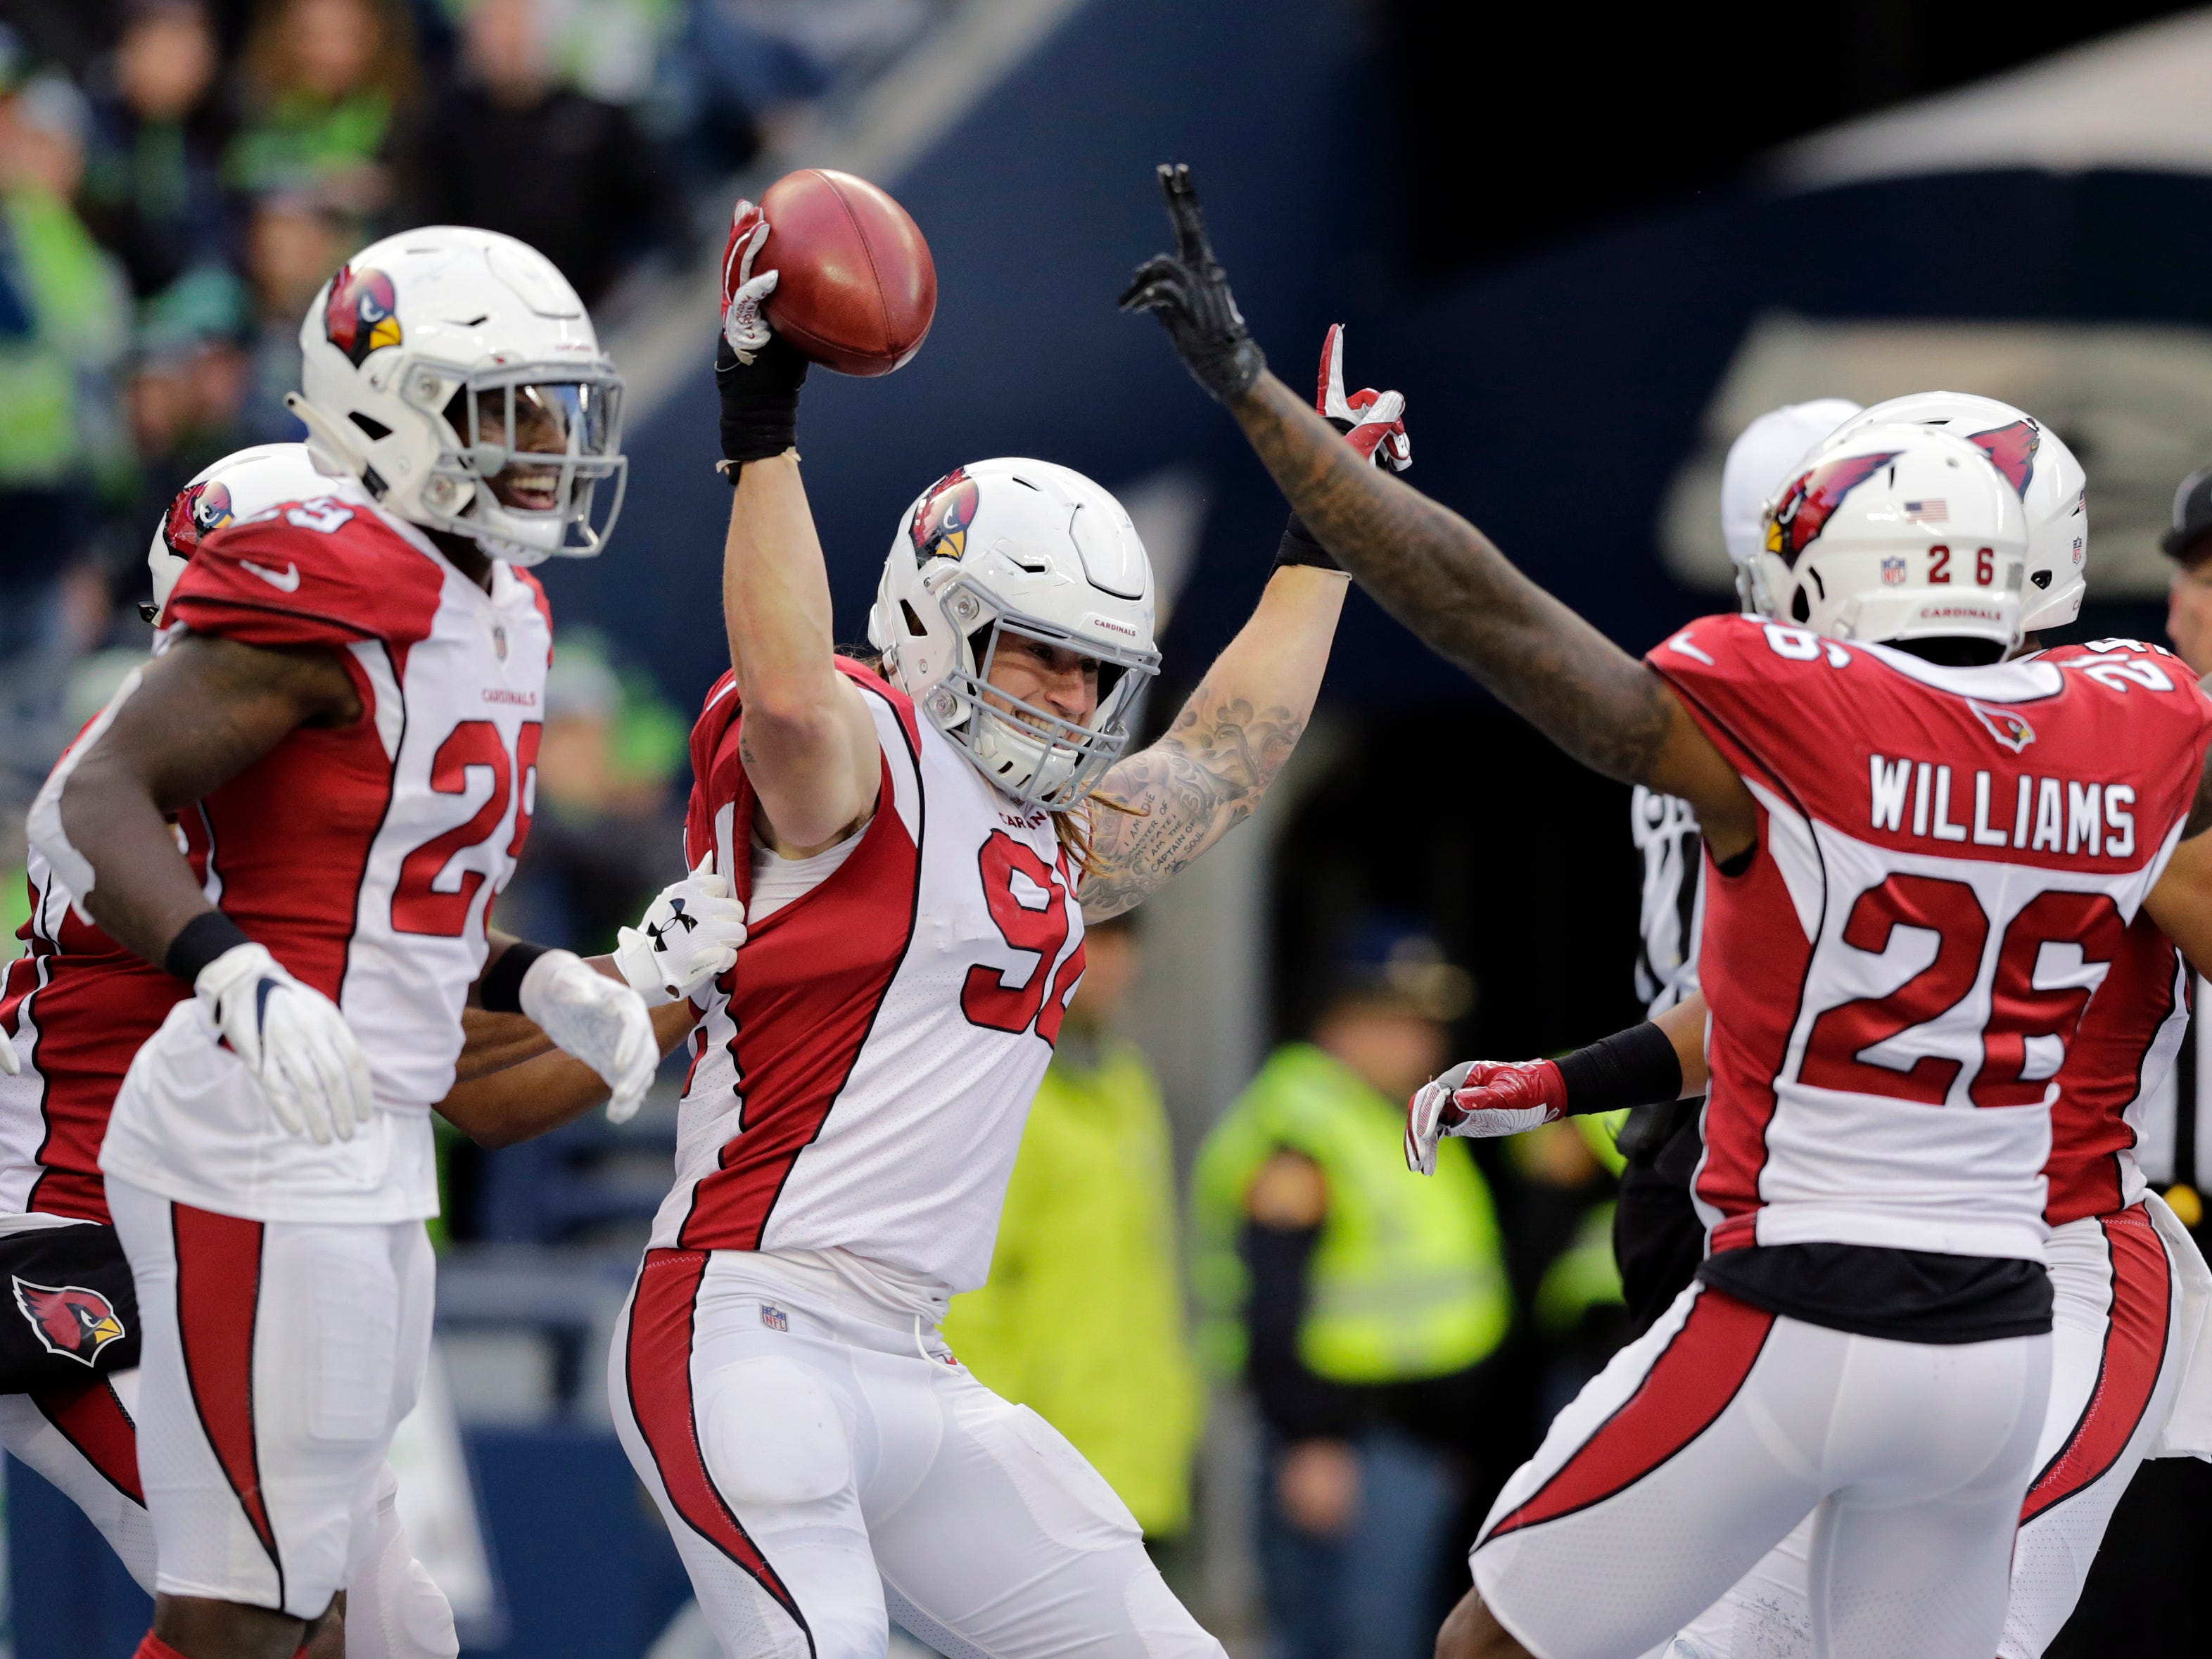 Arizona Cardinals' Dennis Gardeck (92) celebrates with teammates after recovering a blocked kick in the end zone to score a touchdown against the Seattle Seahawks during the second half of an NFL football game, Sunday, Dec. 30, 2018, in Seattle. (AP Photo/John Froschauer)